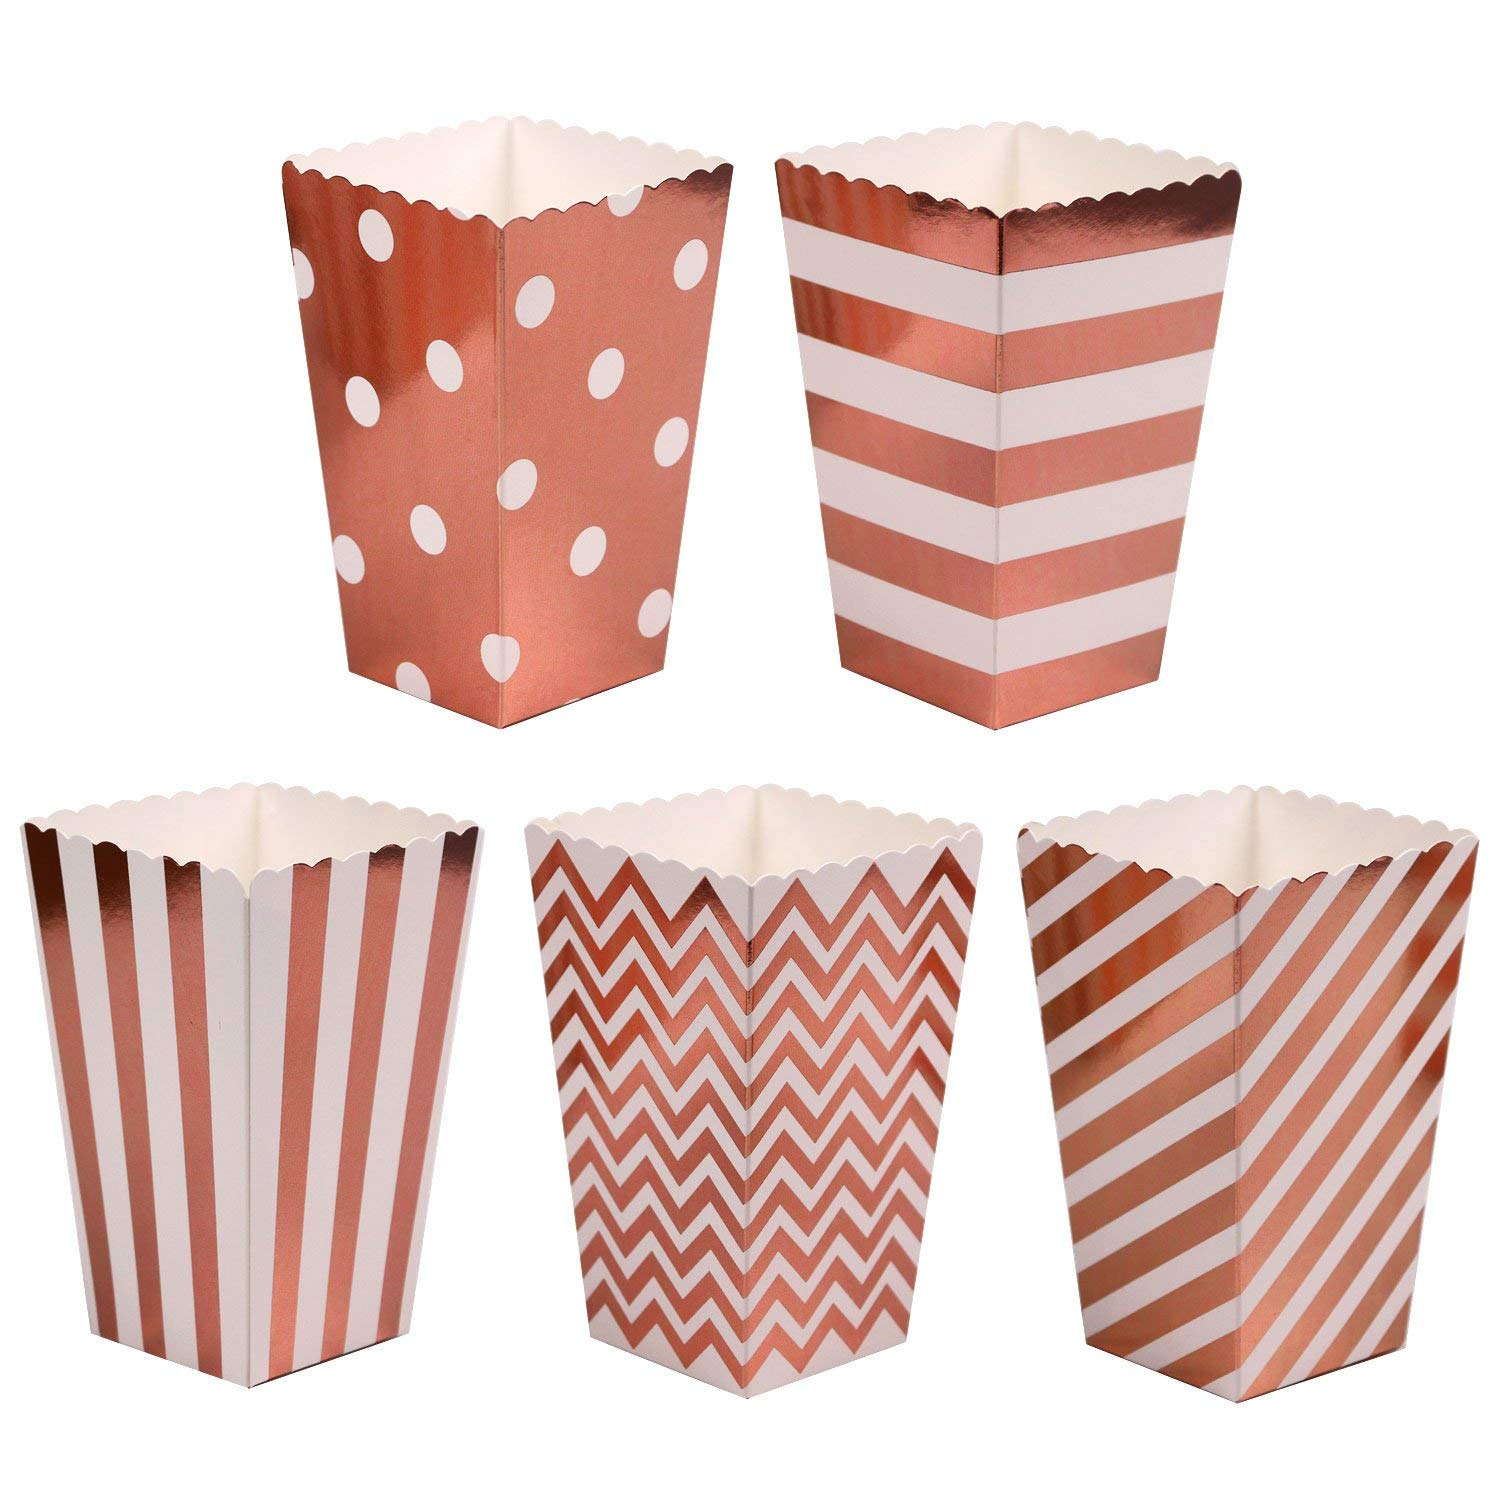 Mini Poprcorn Boxes 100 Pack Rose Gold Paper Popcorn Snack Containers Treat Box for Wedding Party Bridal Shower Birthday Movies by BALANSOHO (Image #1)